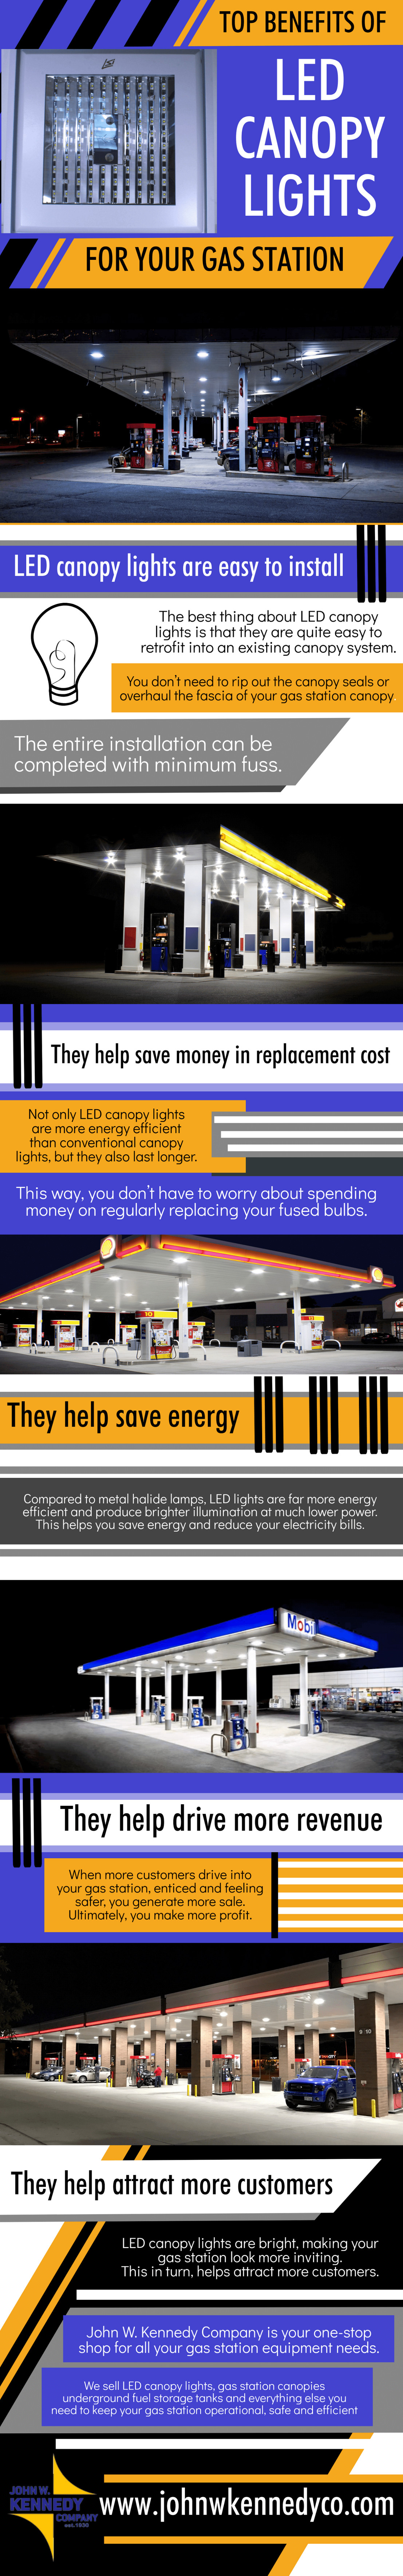 Top Benefits Of LED Canopy Lights